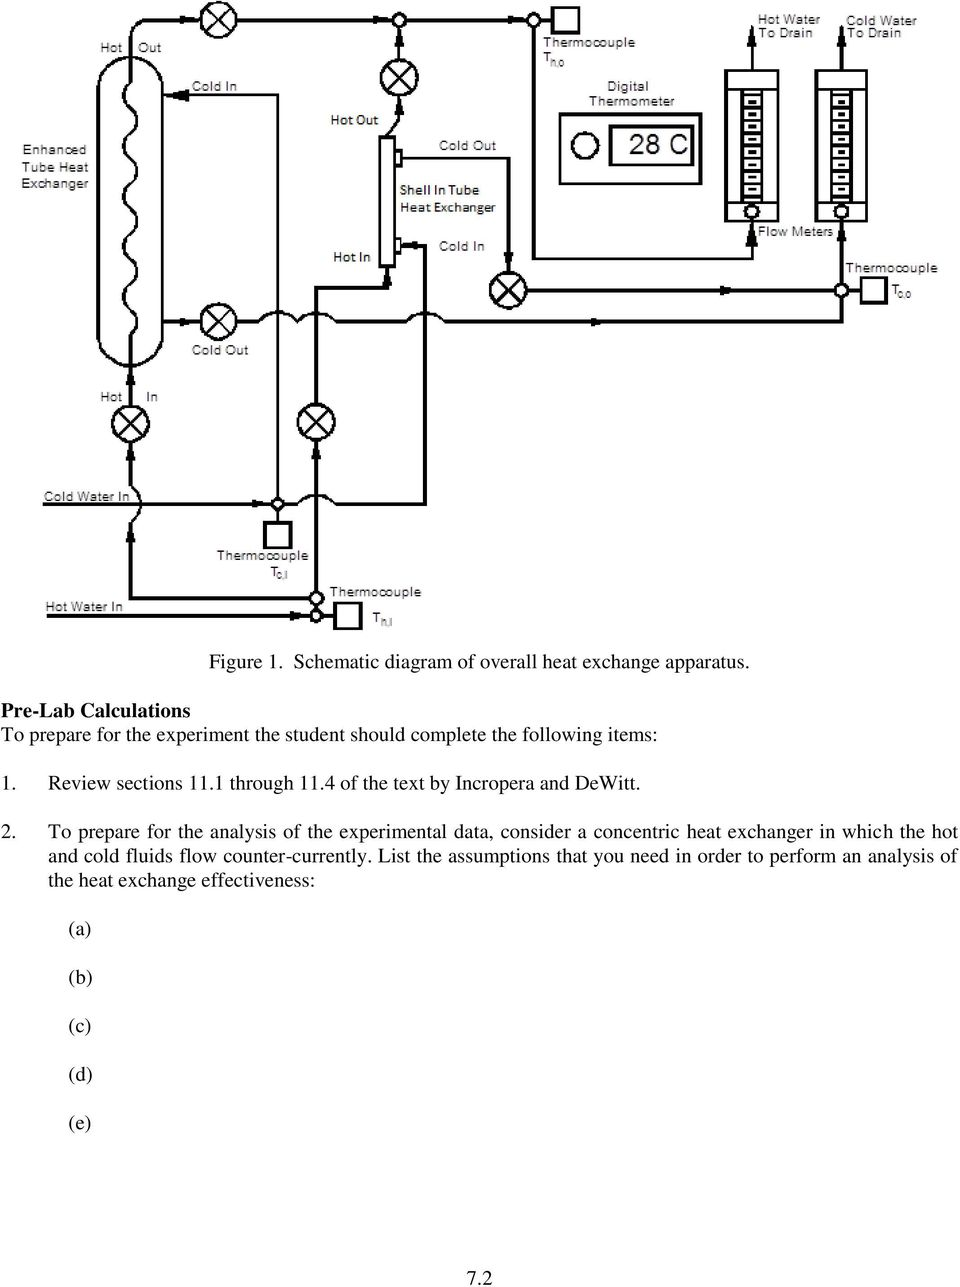 Me Heat Transfer Laboratory Experiment No 7 Analysis Of Enhanced Digital Thermometer Schematics 1 Through 114 The Text By Incropera And Dewitt 2